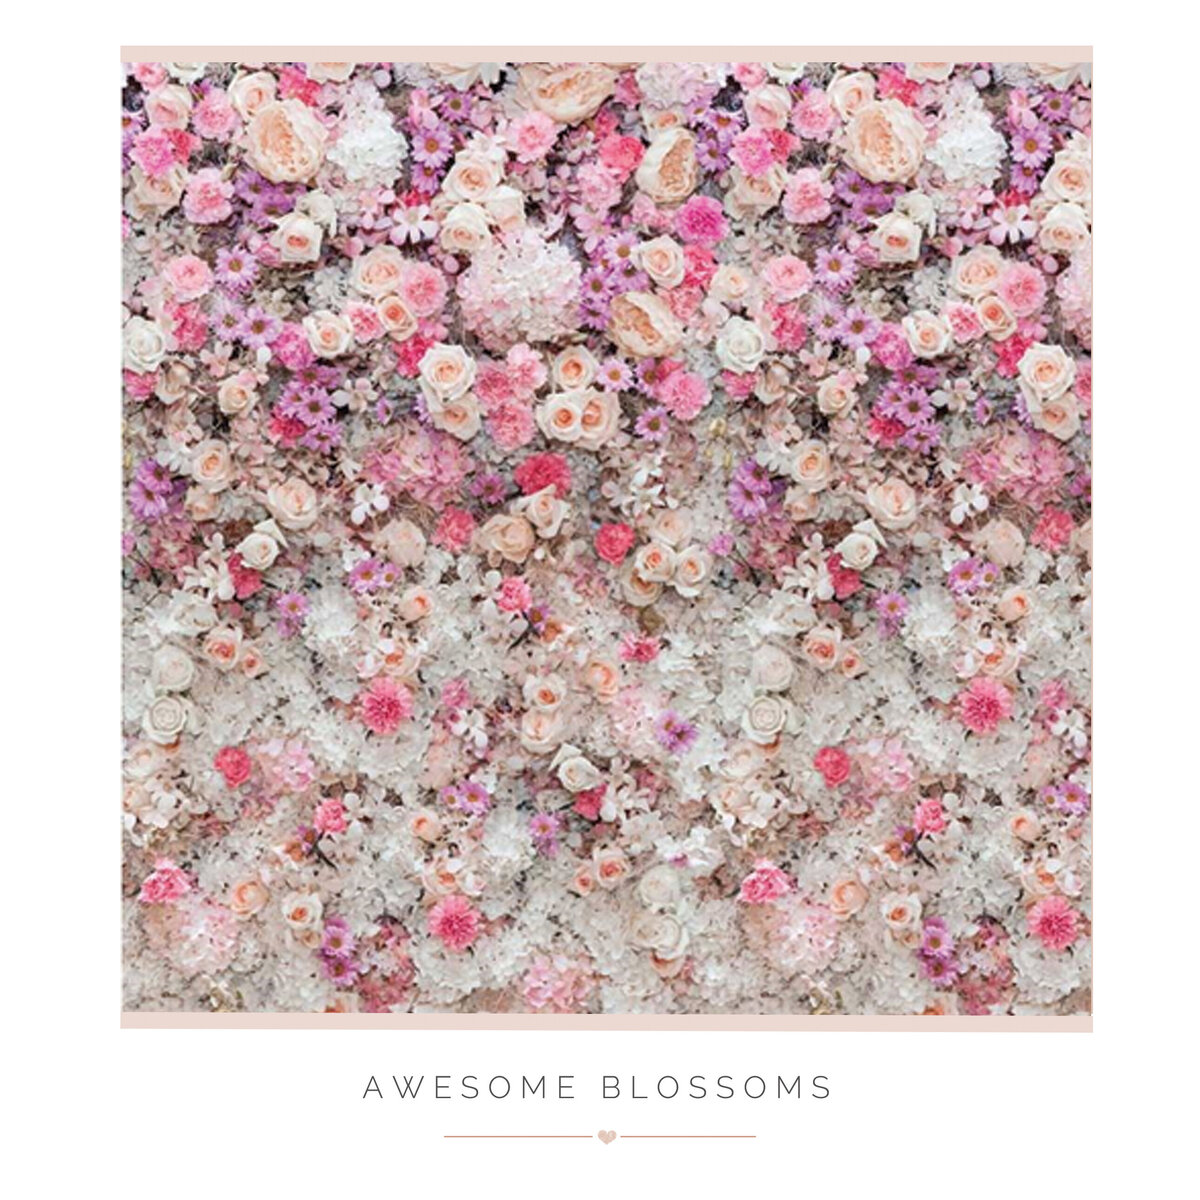 Awesome Blossoms